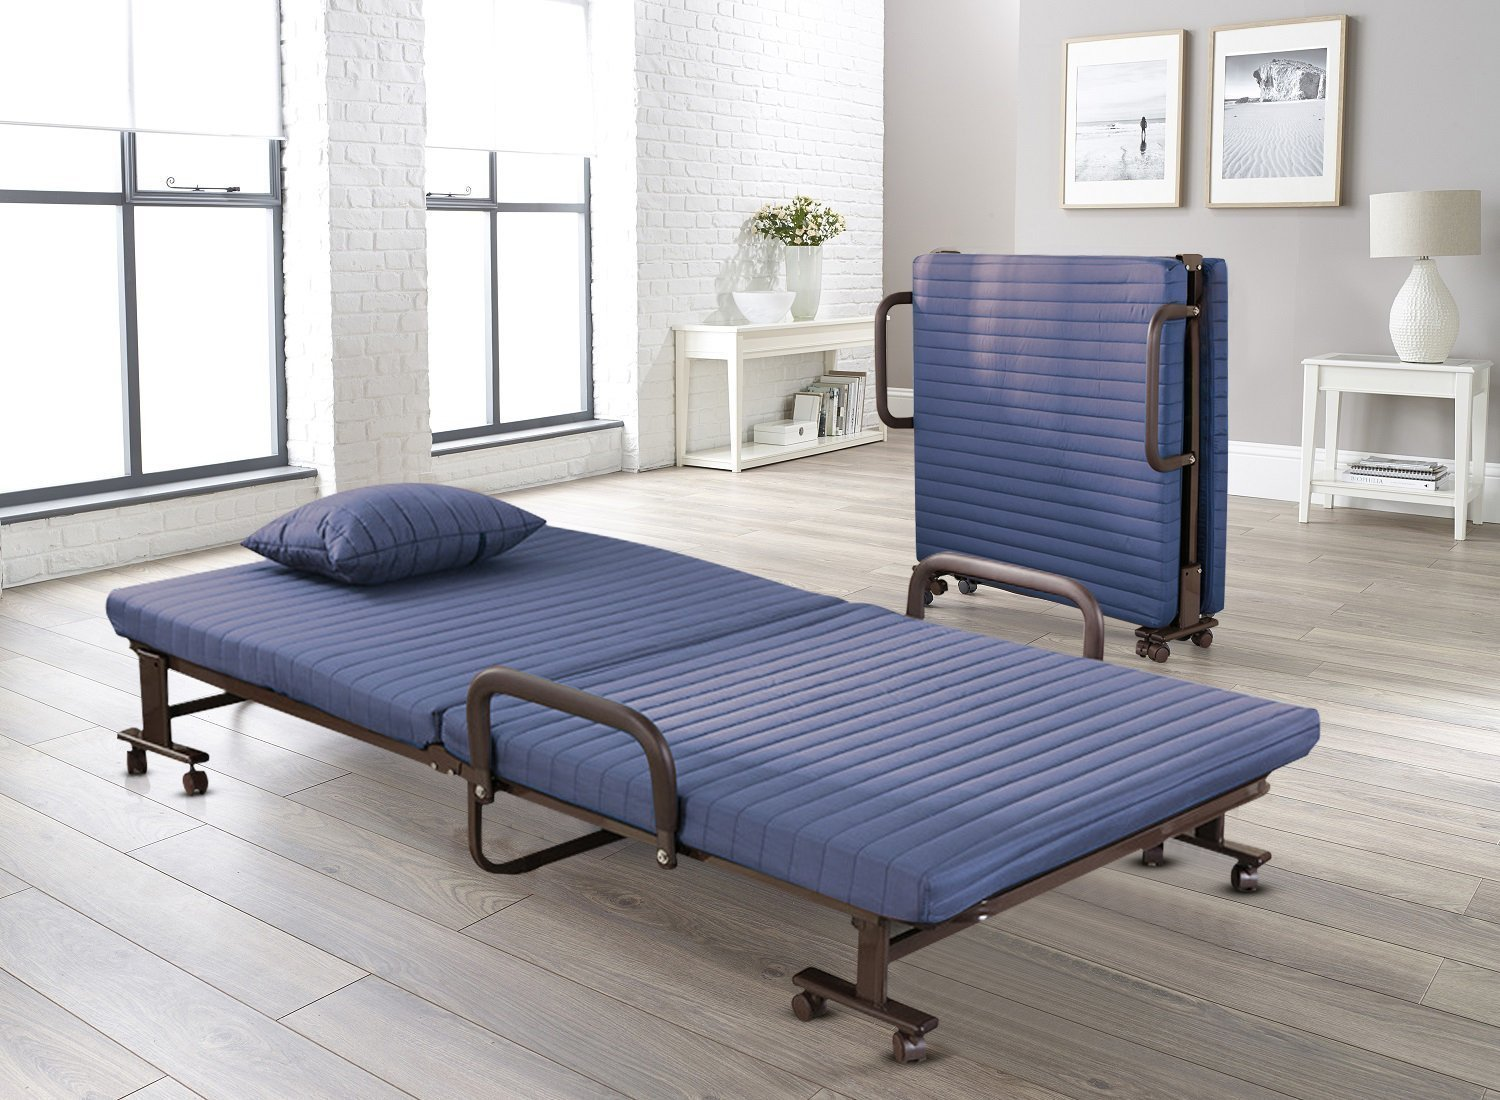 - Vesgantti Folding Away Guest Single Beds With Mattresses Foldable Lounge  Chair With Adjustable Backrest And Free Pillow (Blue, 190 * 80):  Amazon.co.uk: Kitchen & Home